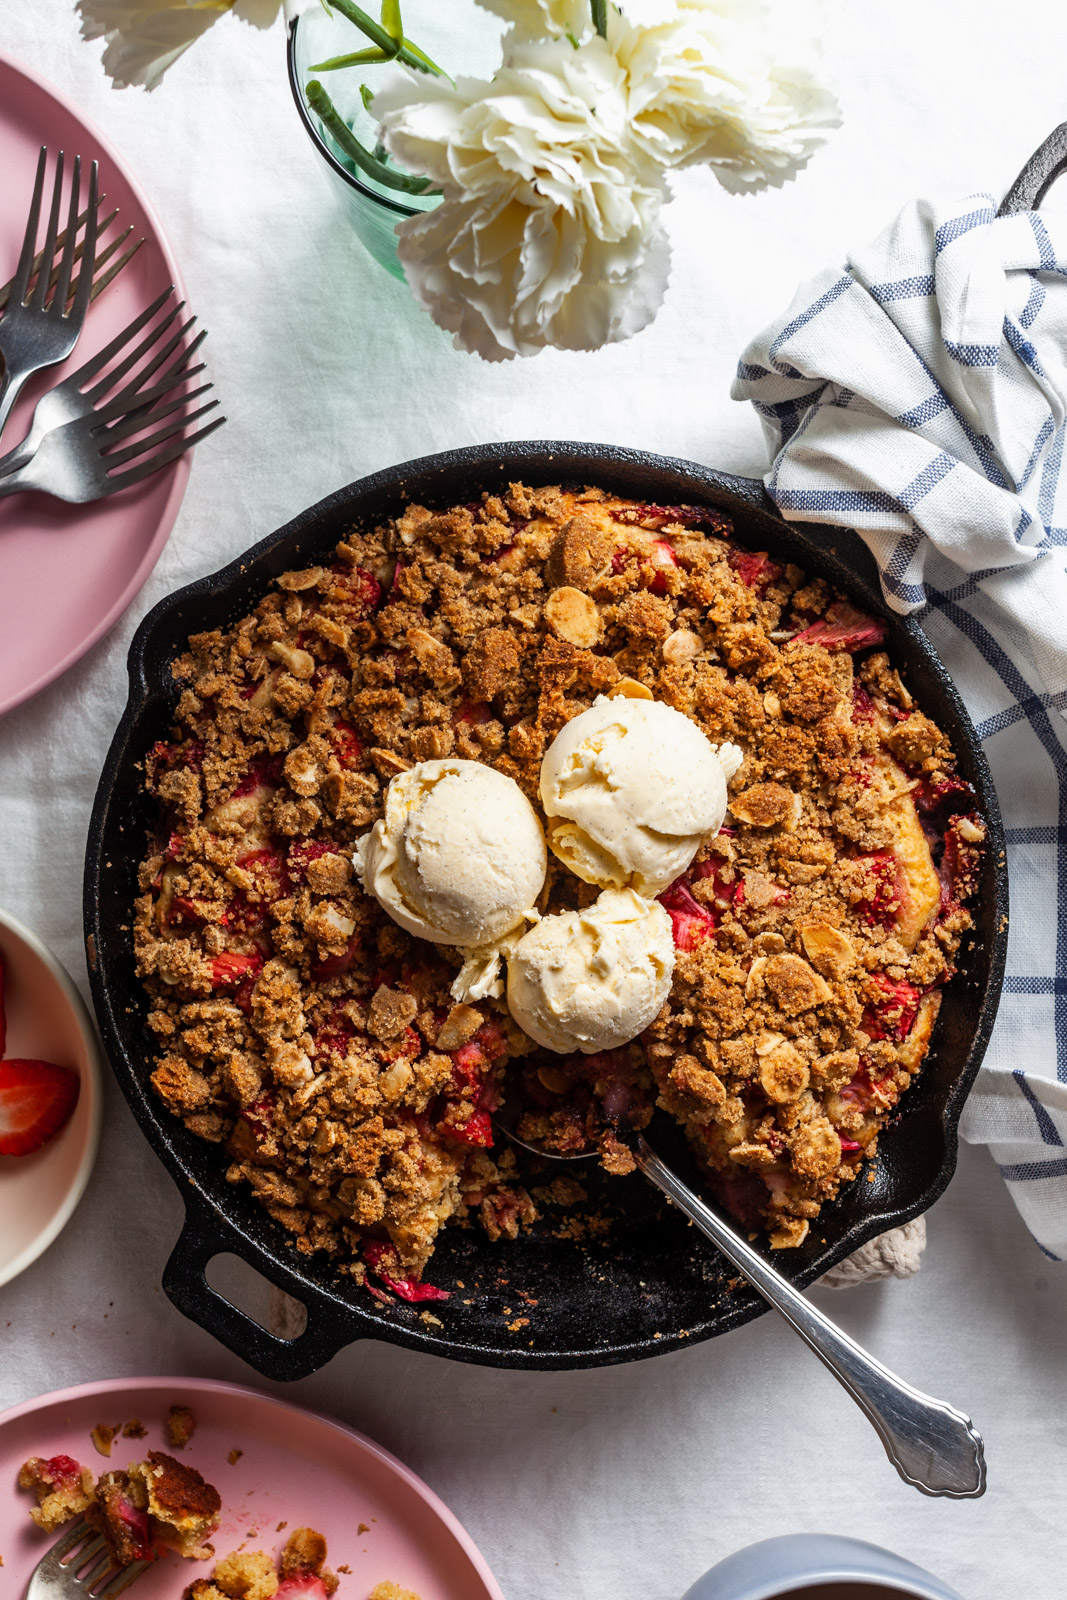 Strawberry Rhubarb Ricotta Skillet Buckle